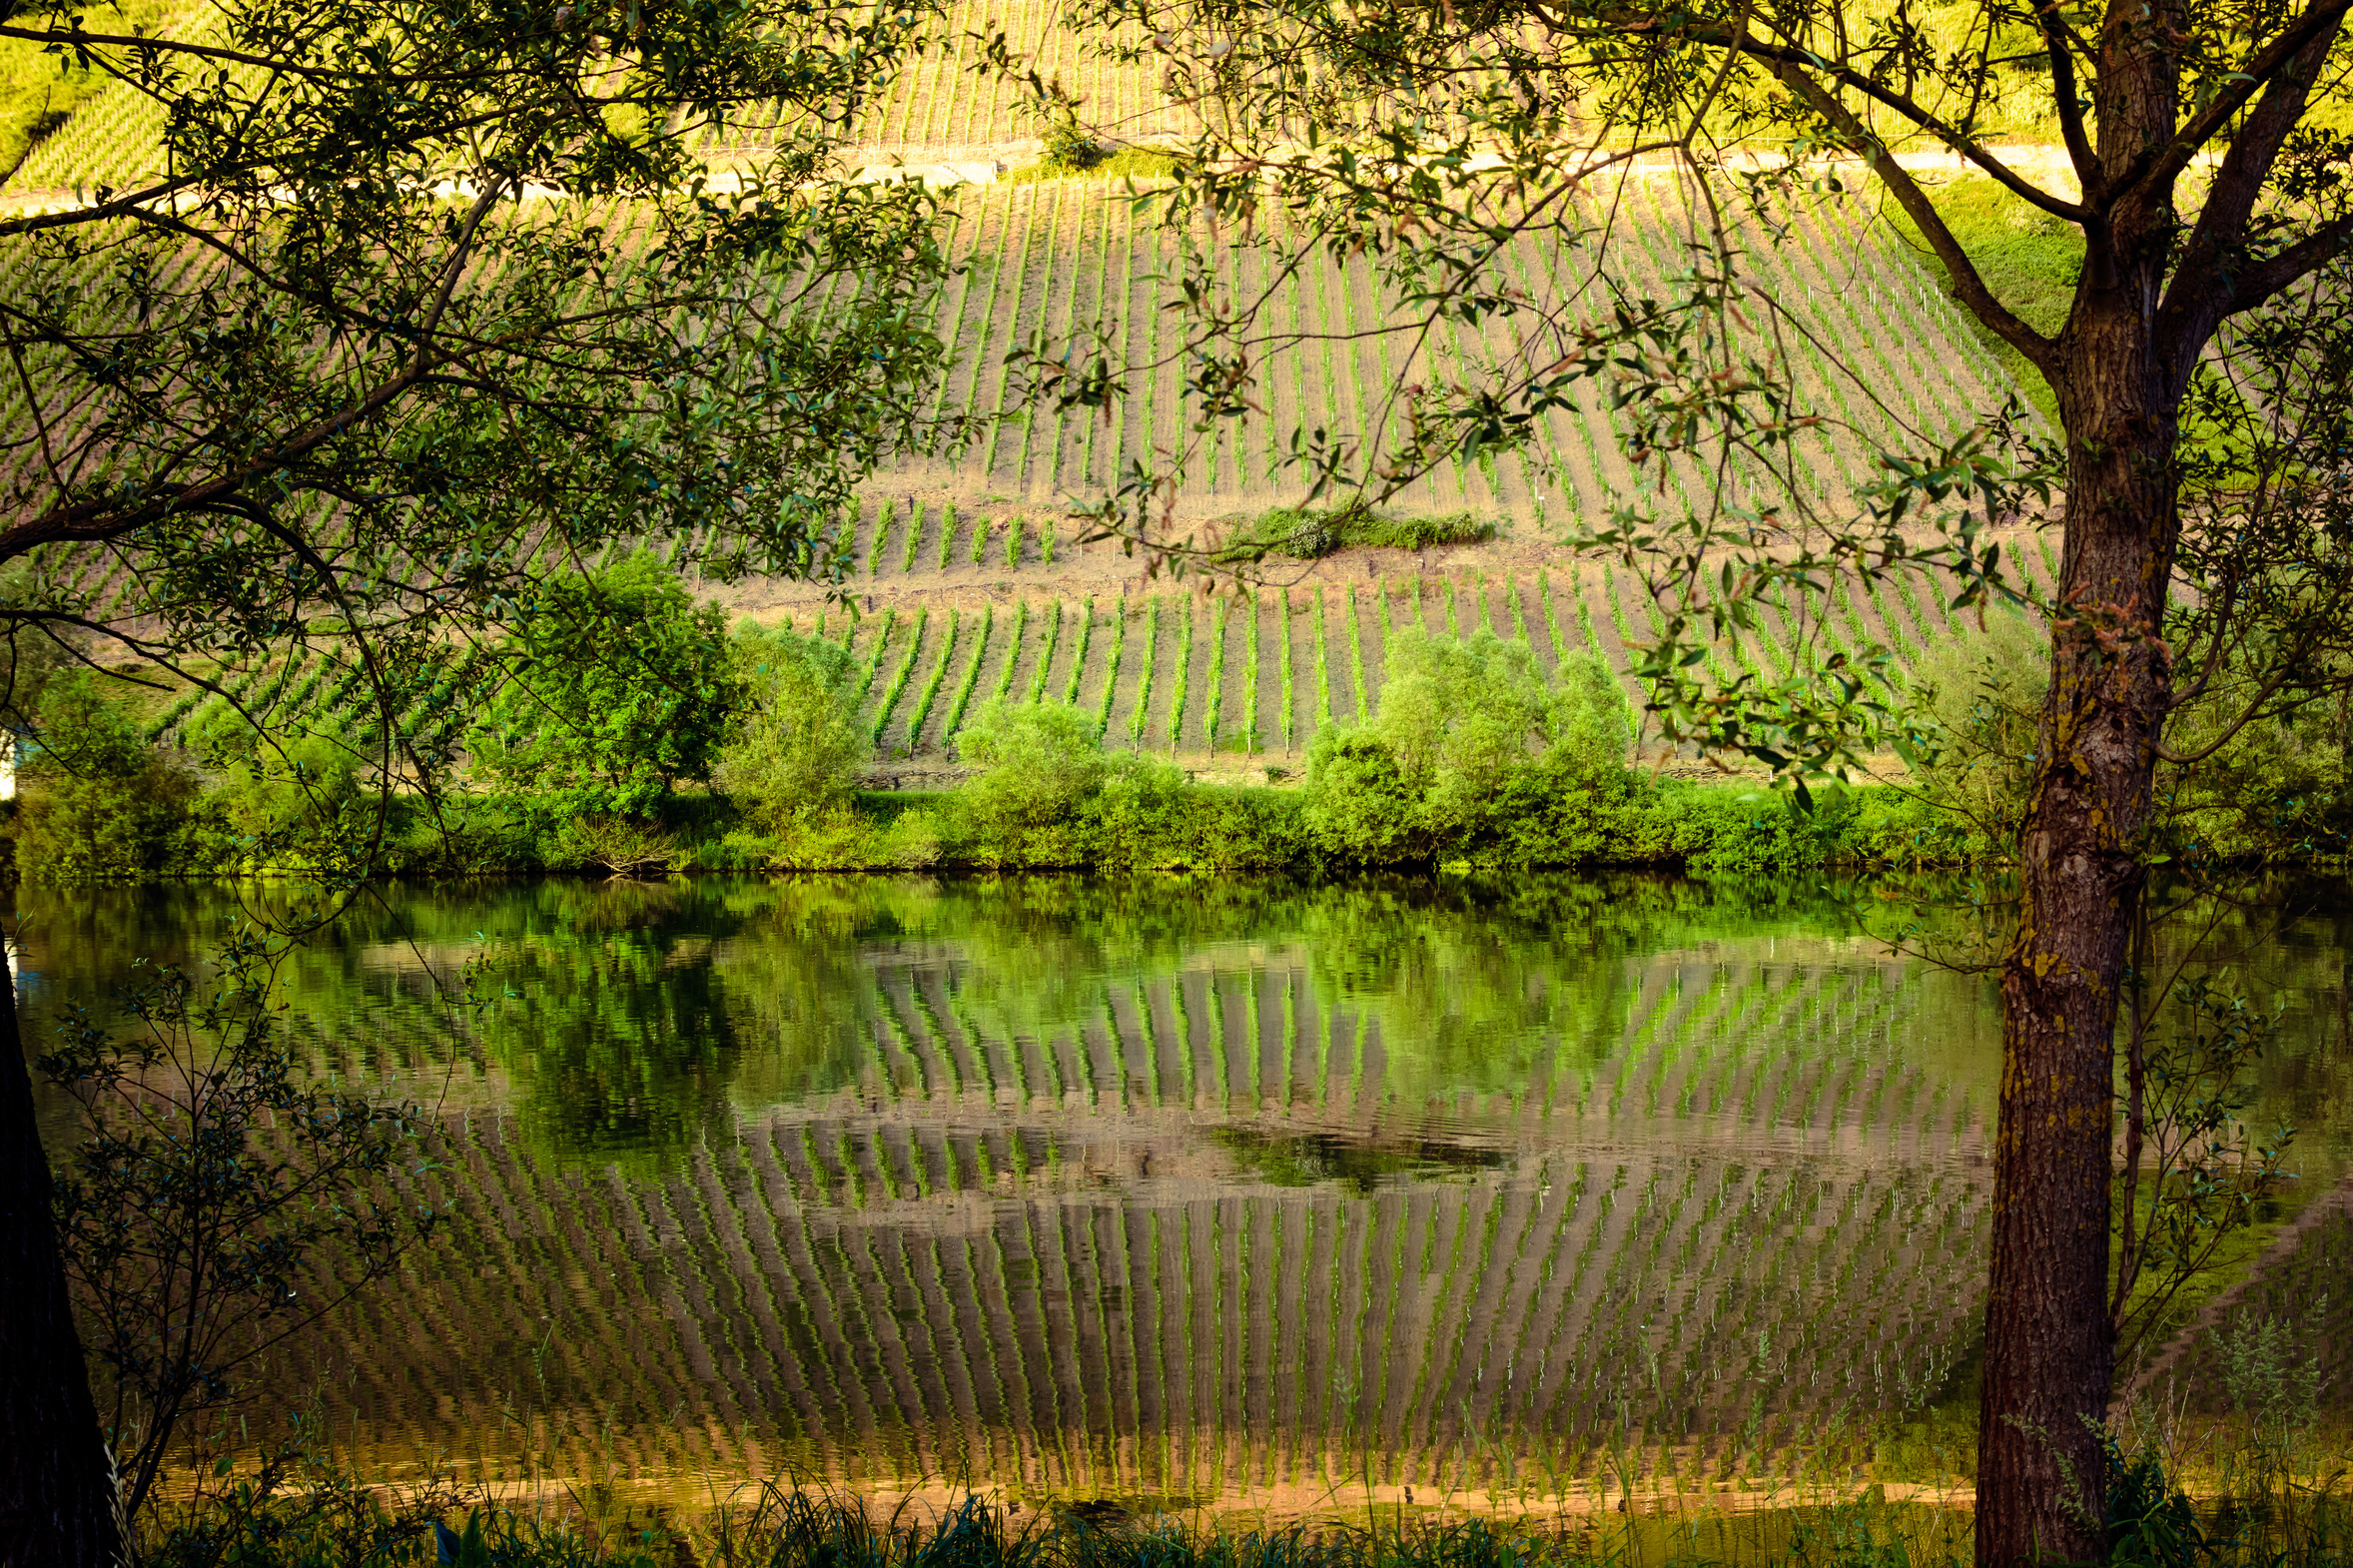 Vineyards reflecting in the moselle river, Germany